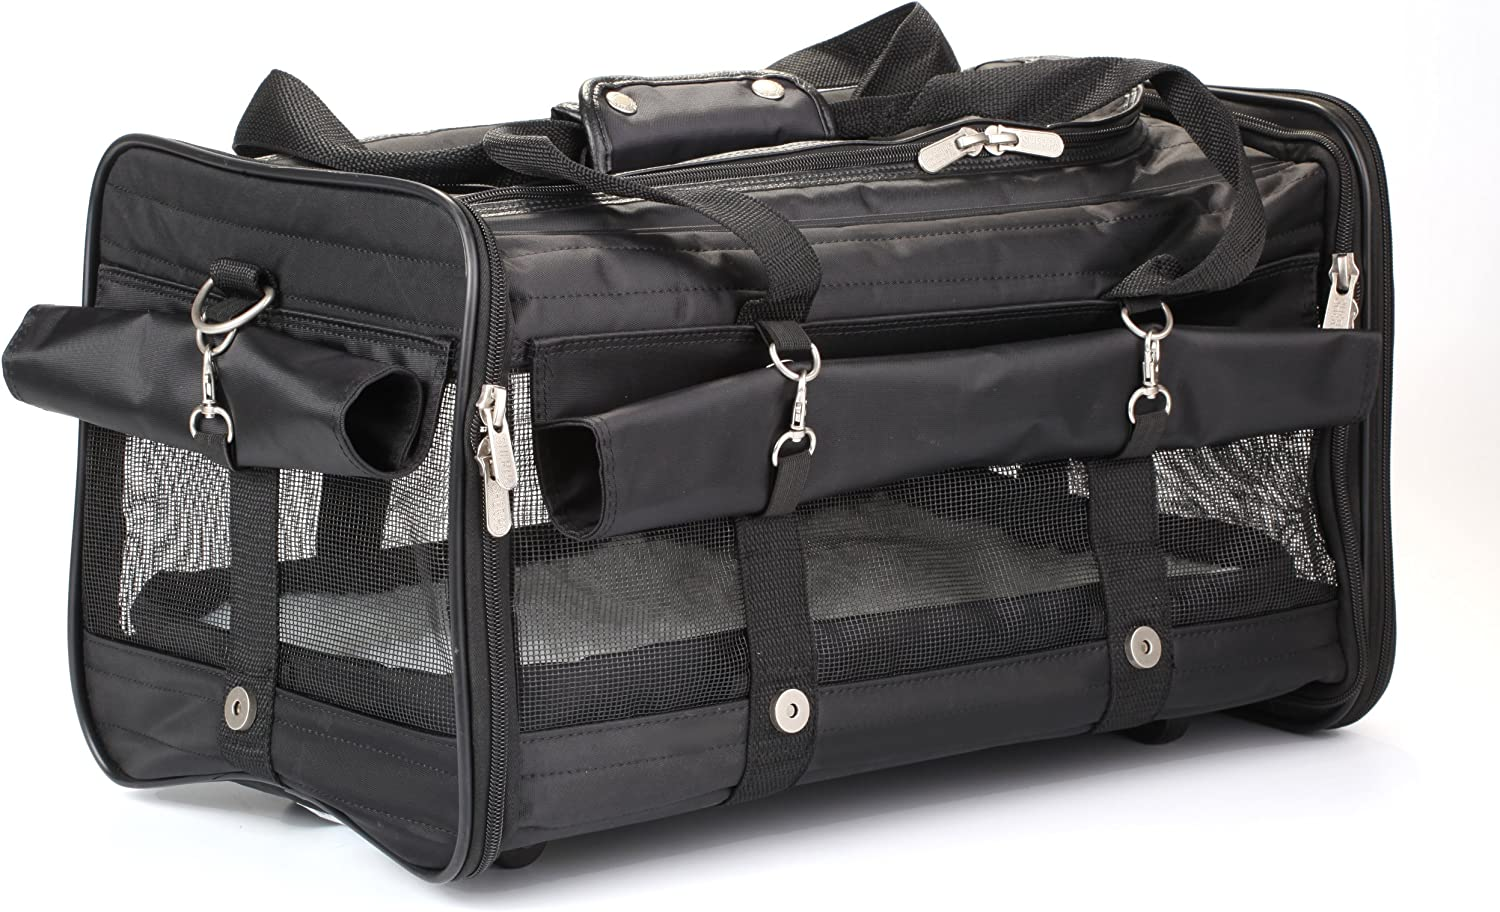 Sherpa on Wheels Pet Carrier, Large, Black : Soft Sided Pet Carriers : Pet Supplies